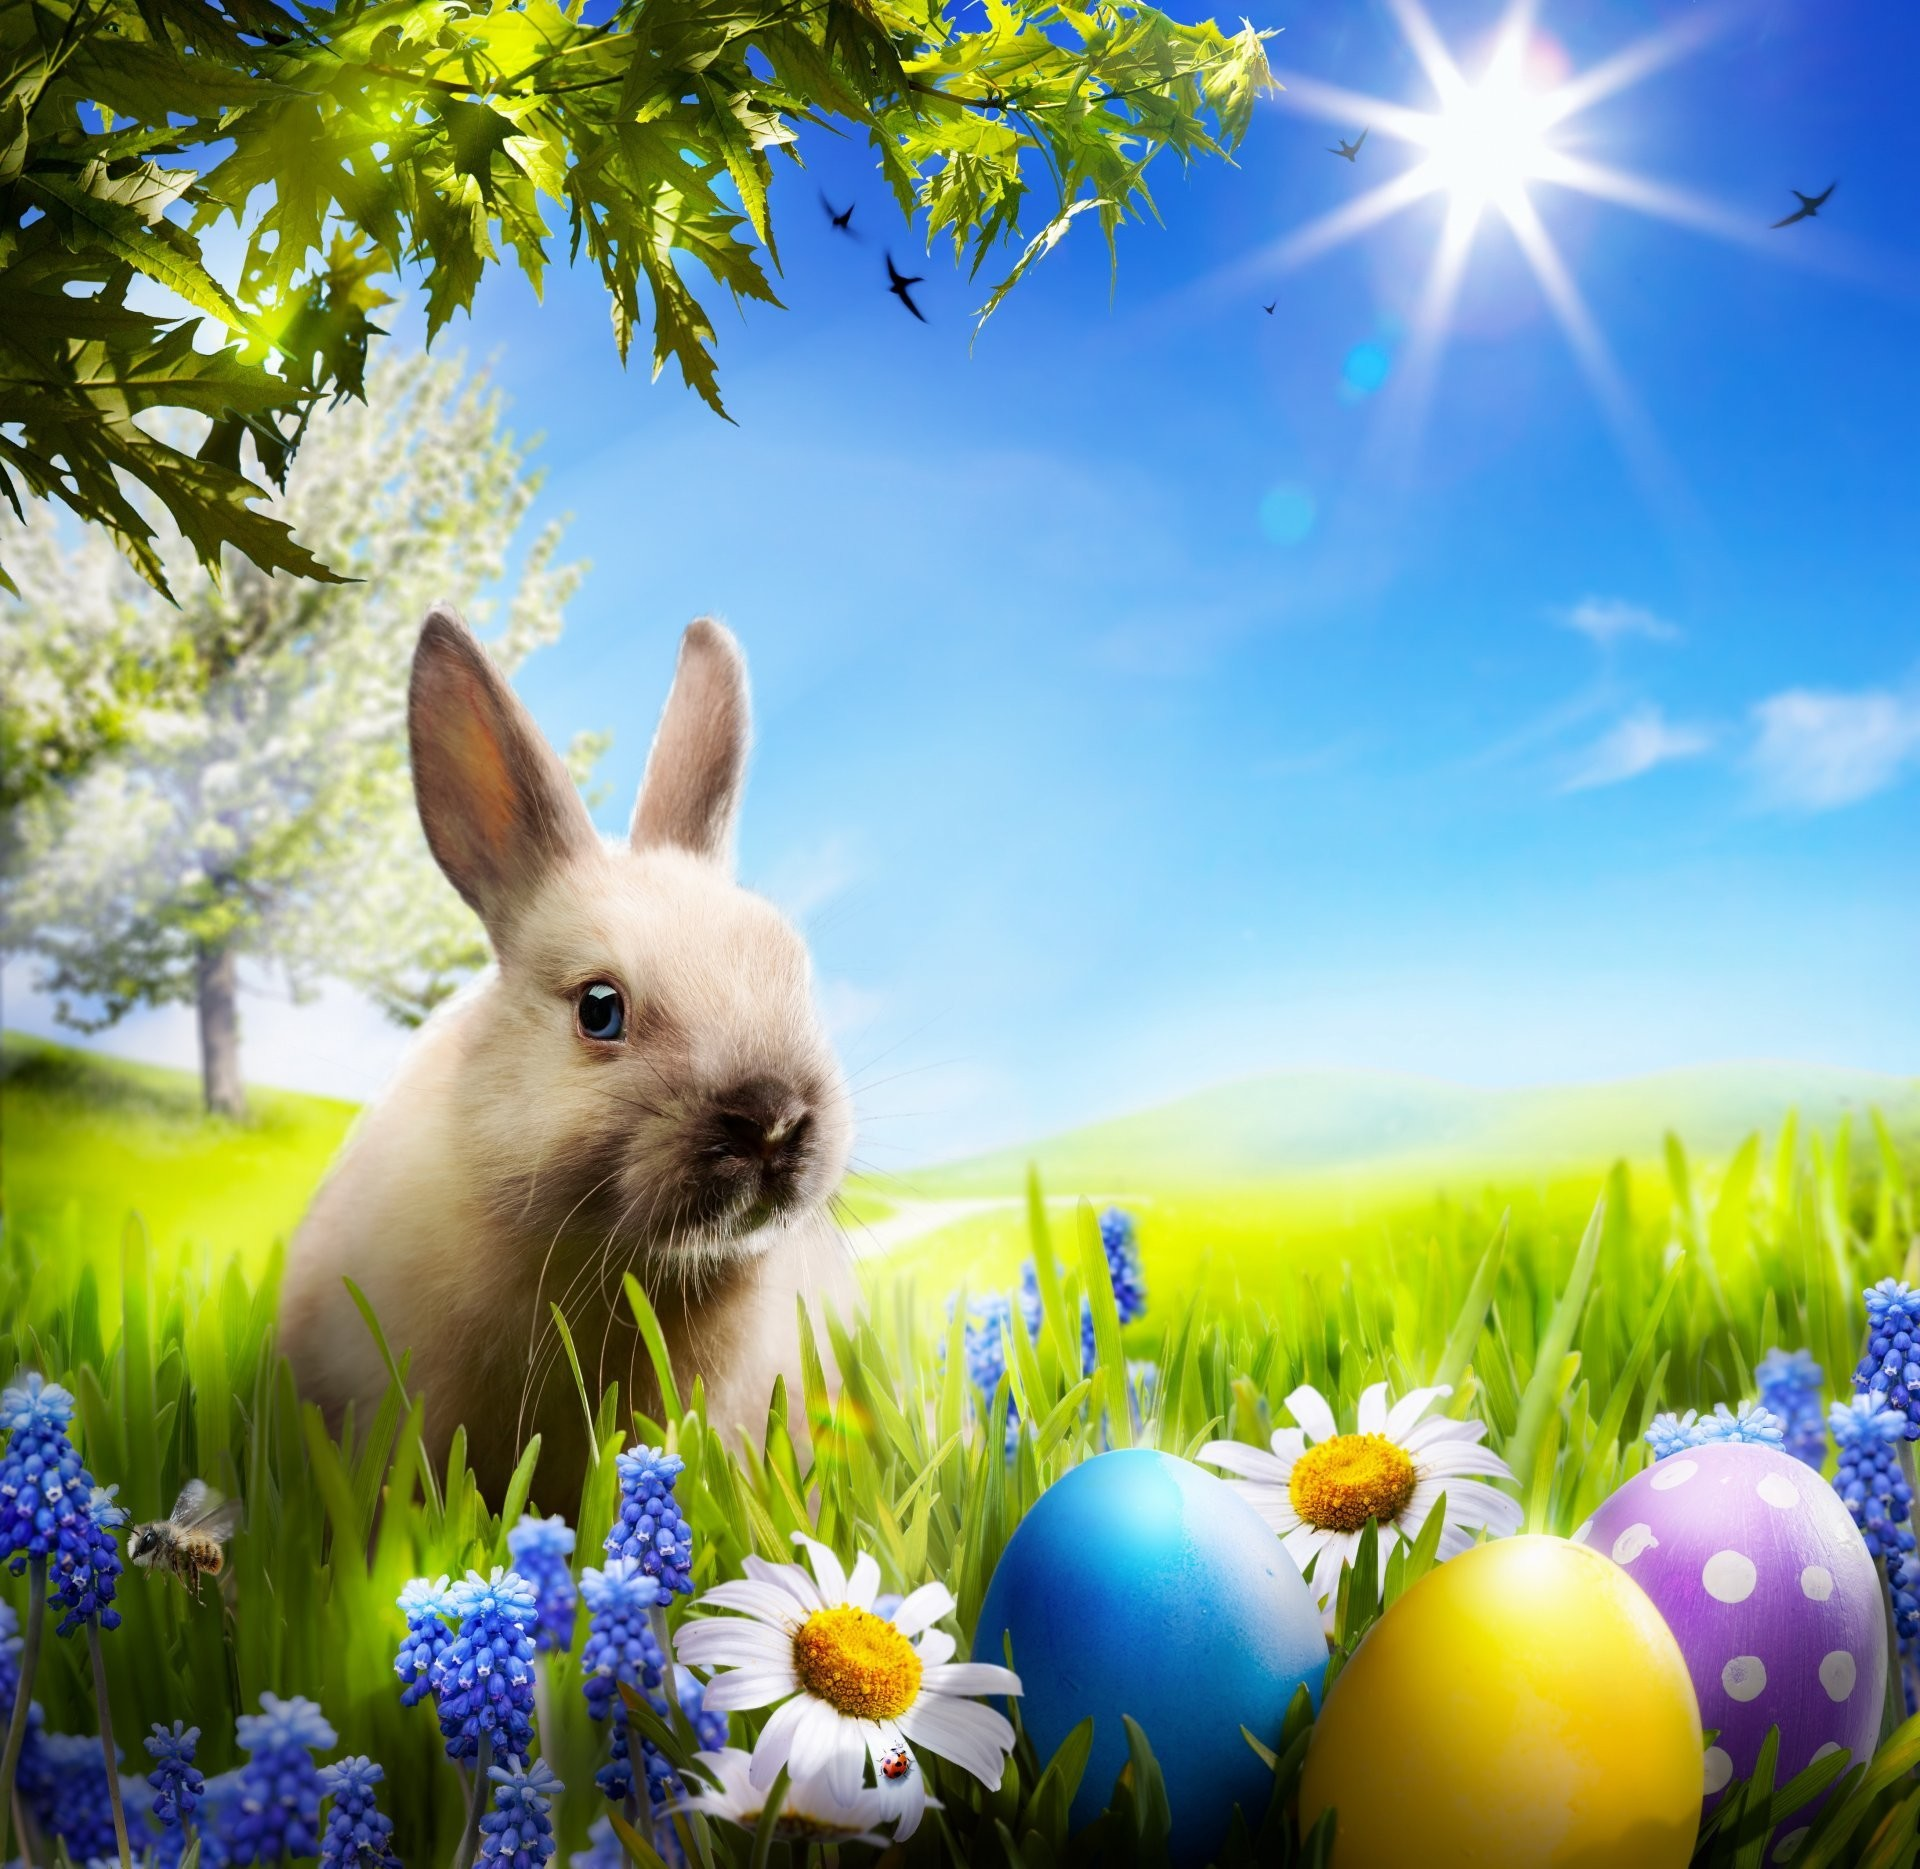 Spring Bunny Wallpaper (61+ Images